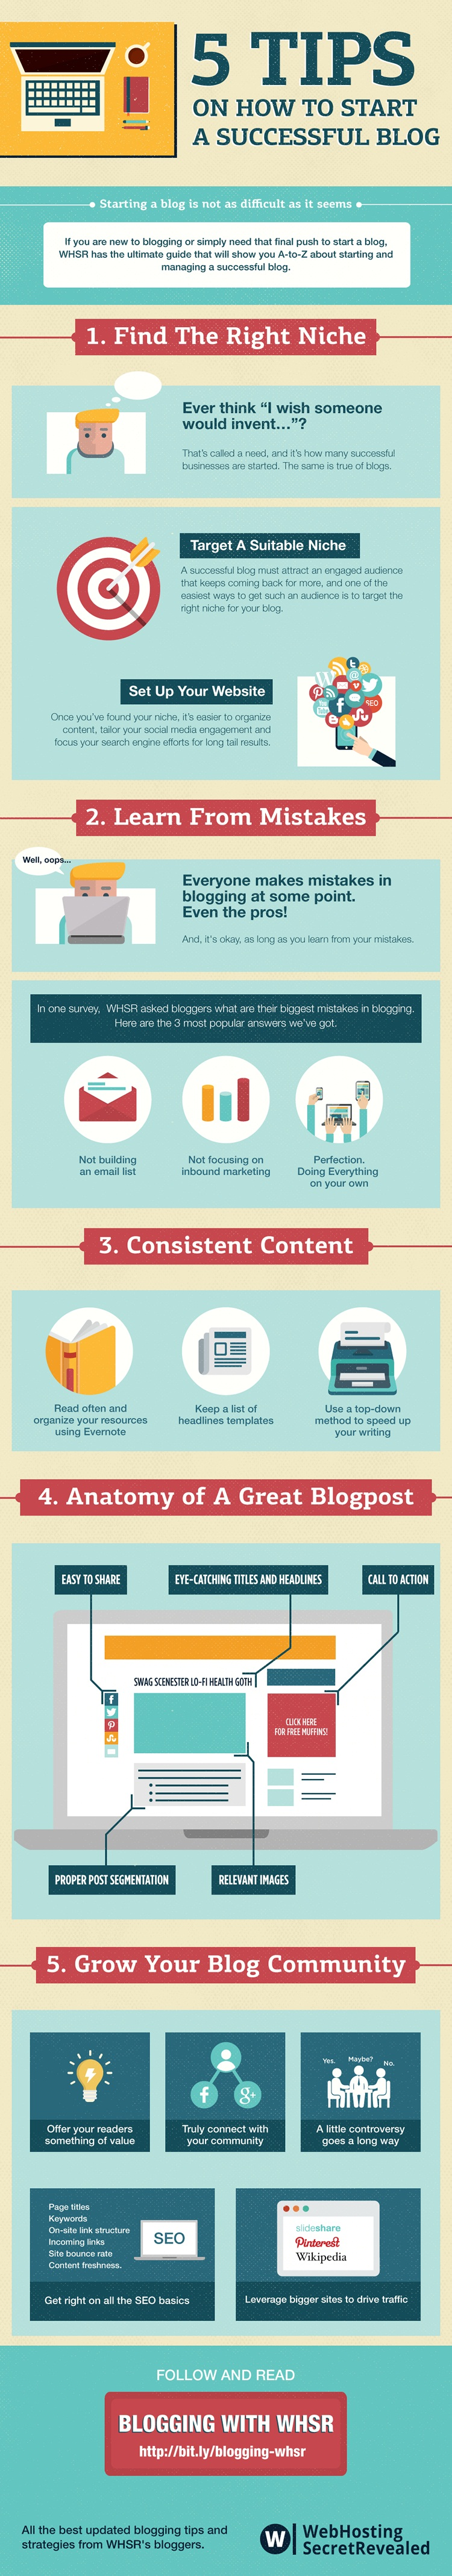 how-to-become successful in blogging